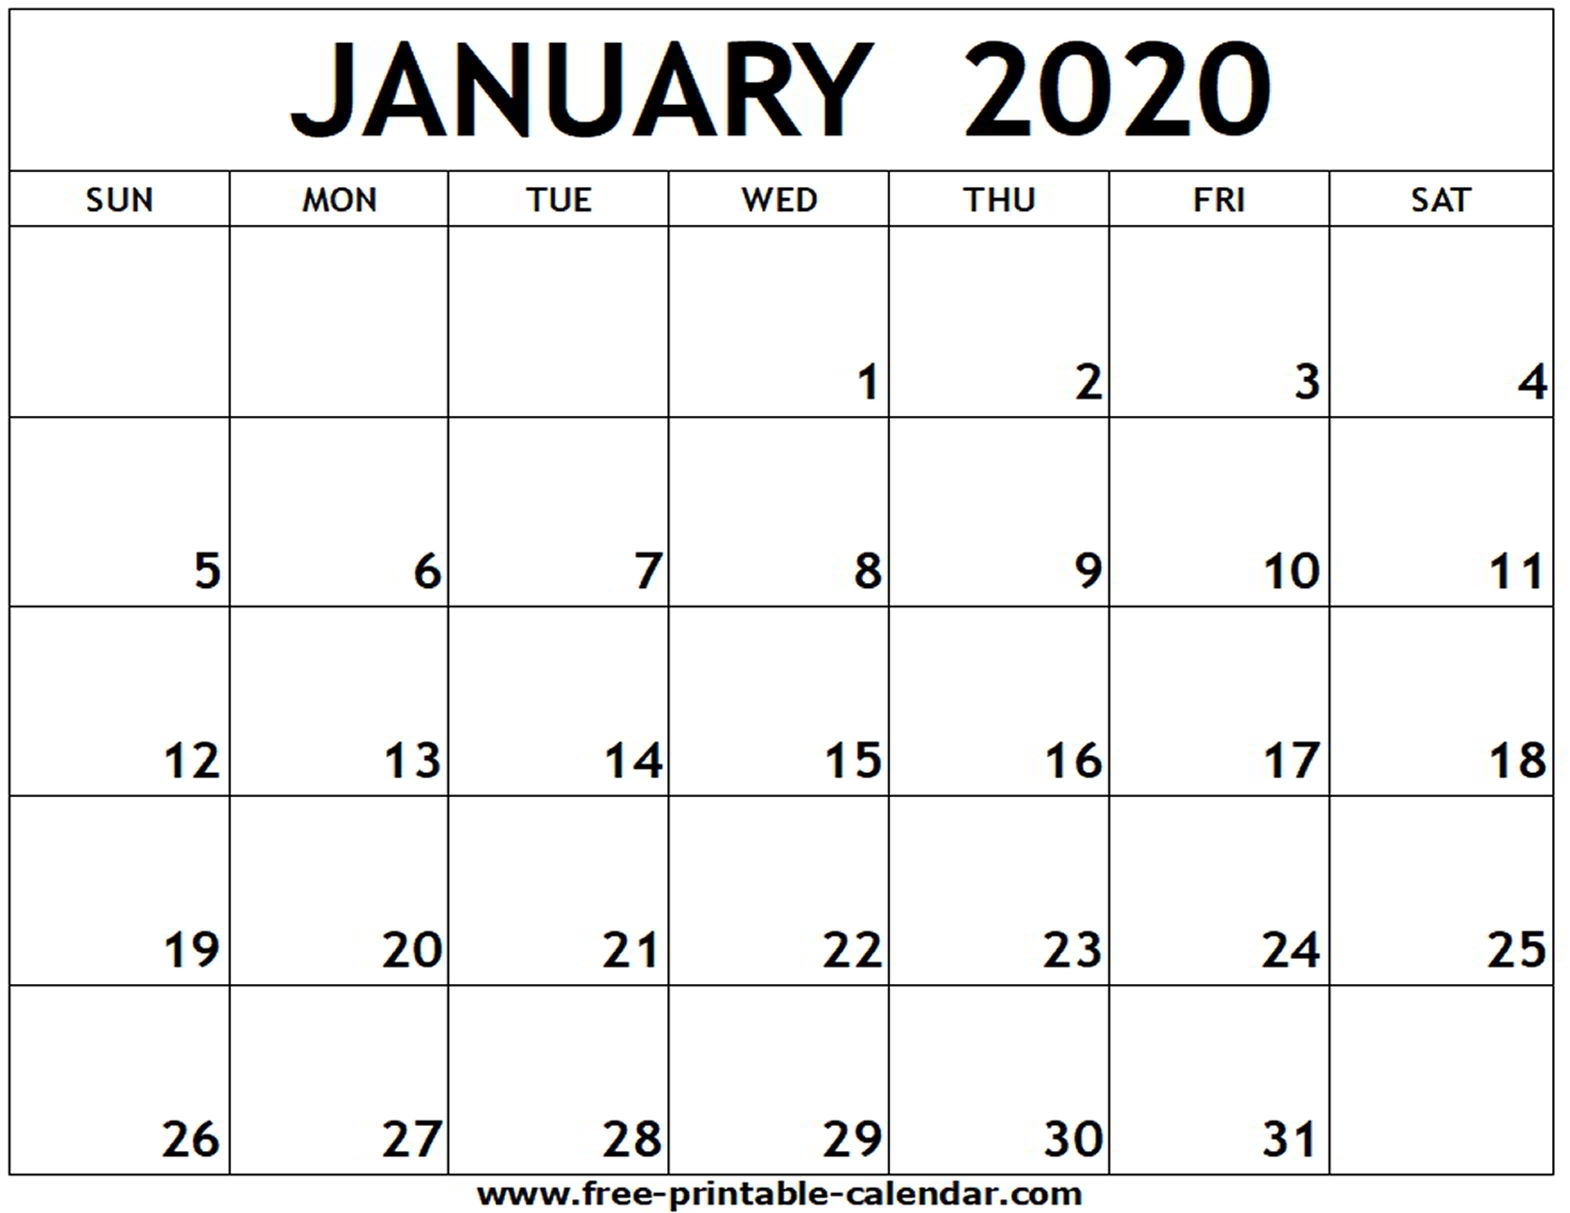 January 2020 Printable Calendar - Free-Printable-Calendar with regard to Fill In Calendar 2020 Printable